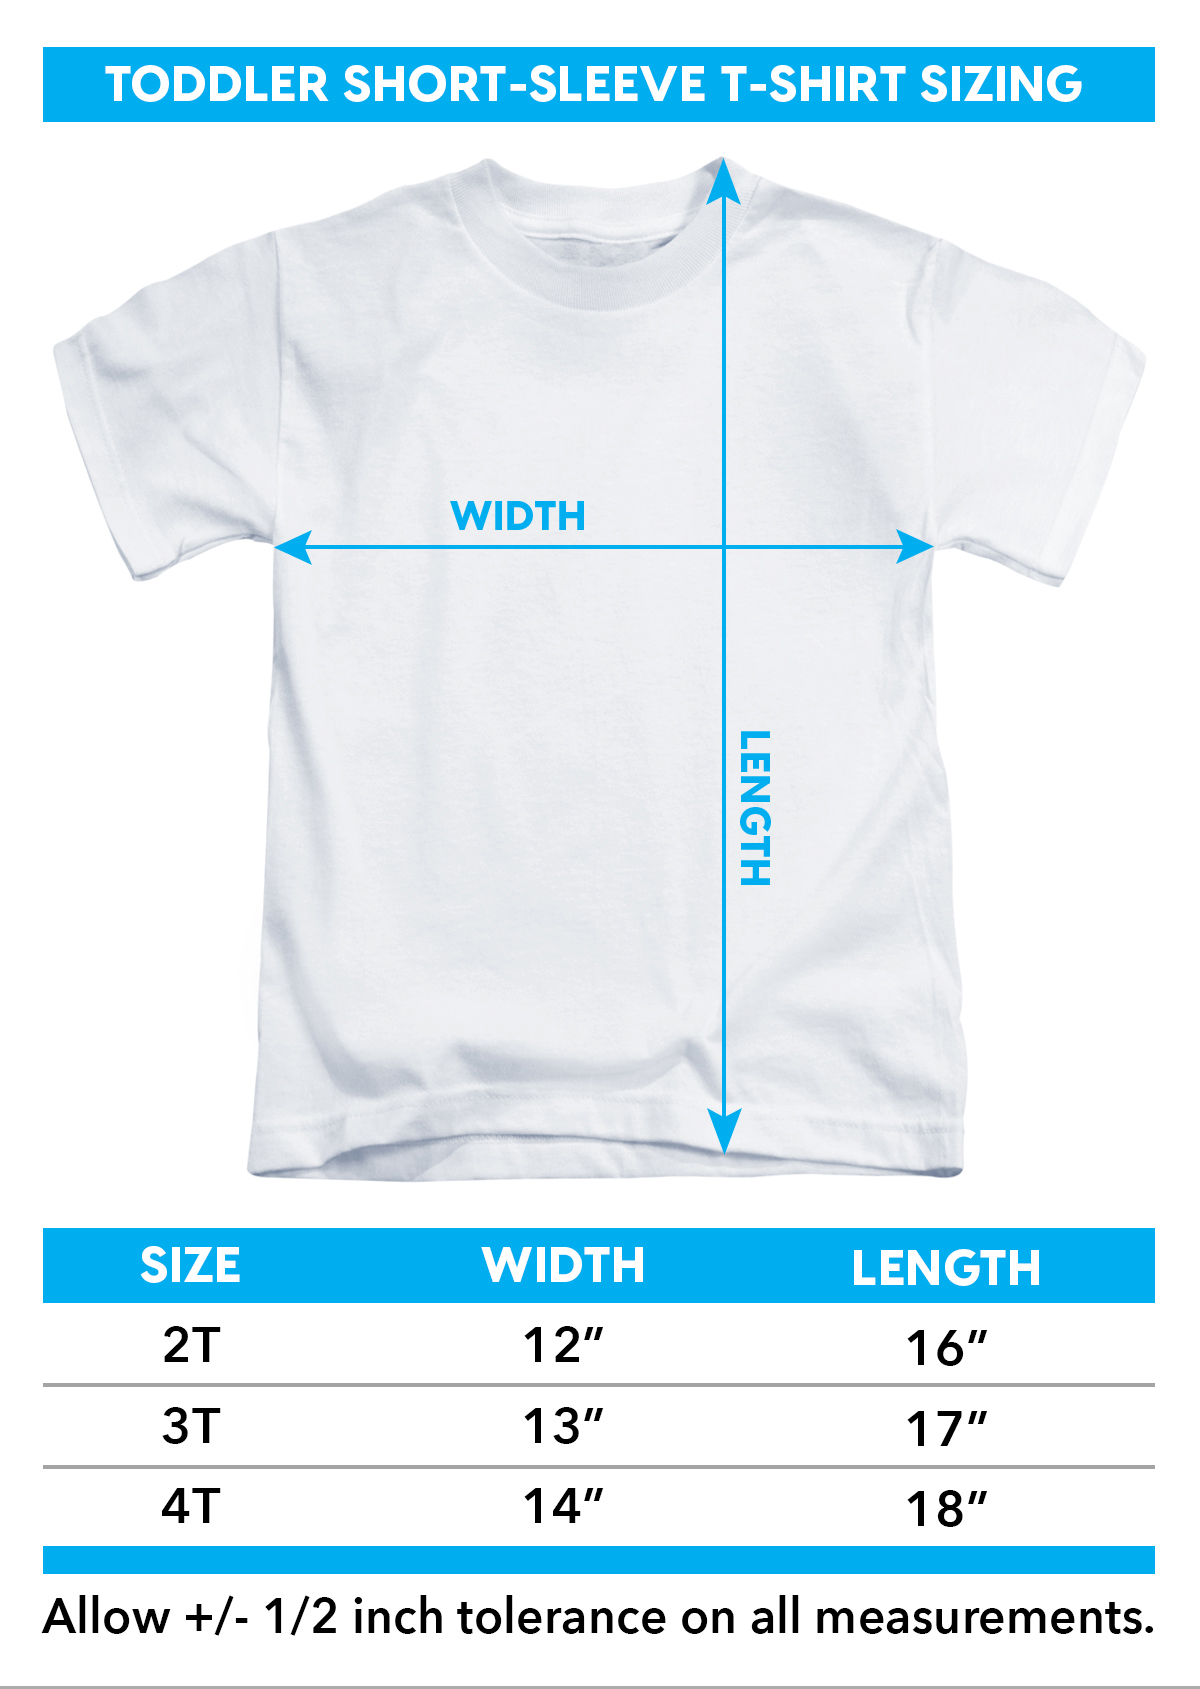 Sizing Chart for The Hobbit Toddler T-Shirt - Smaug on Fires